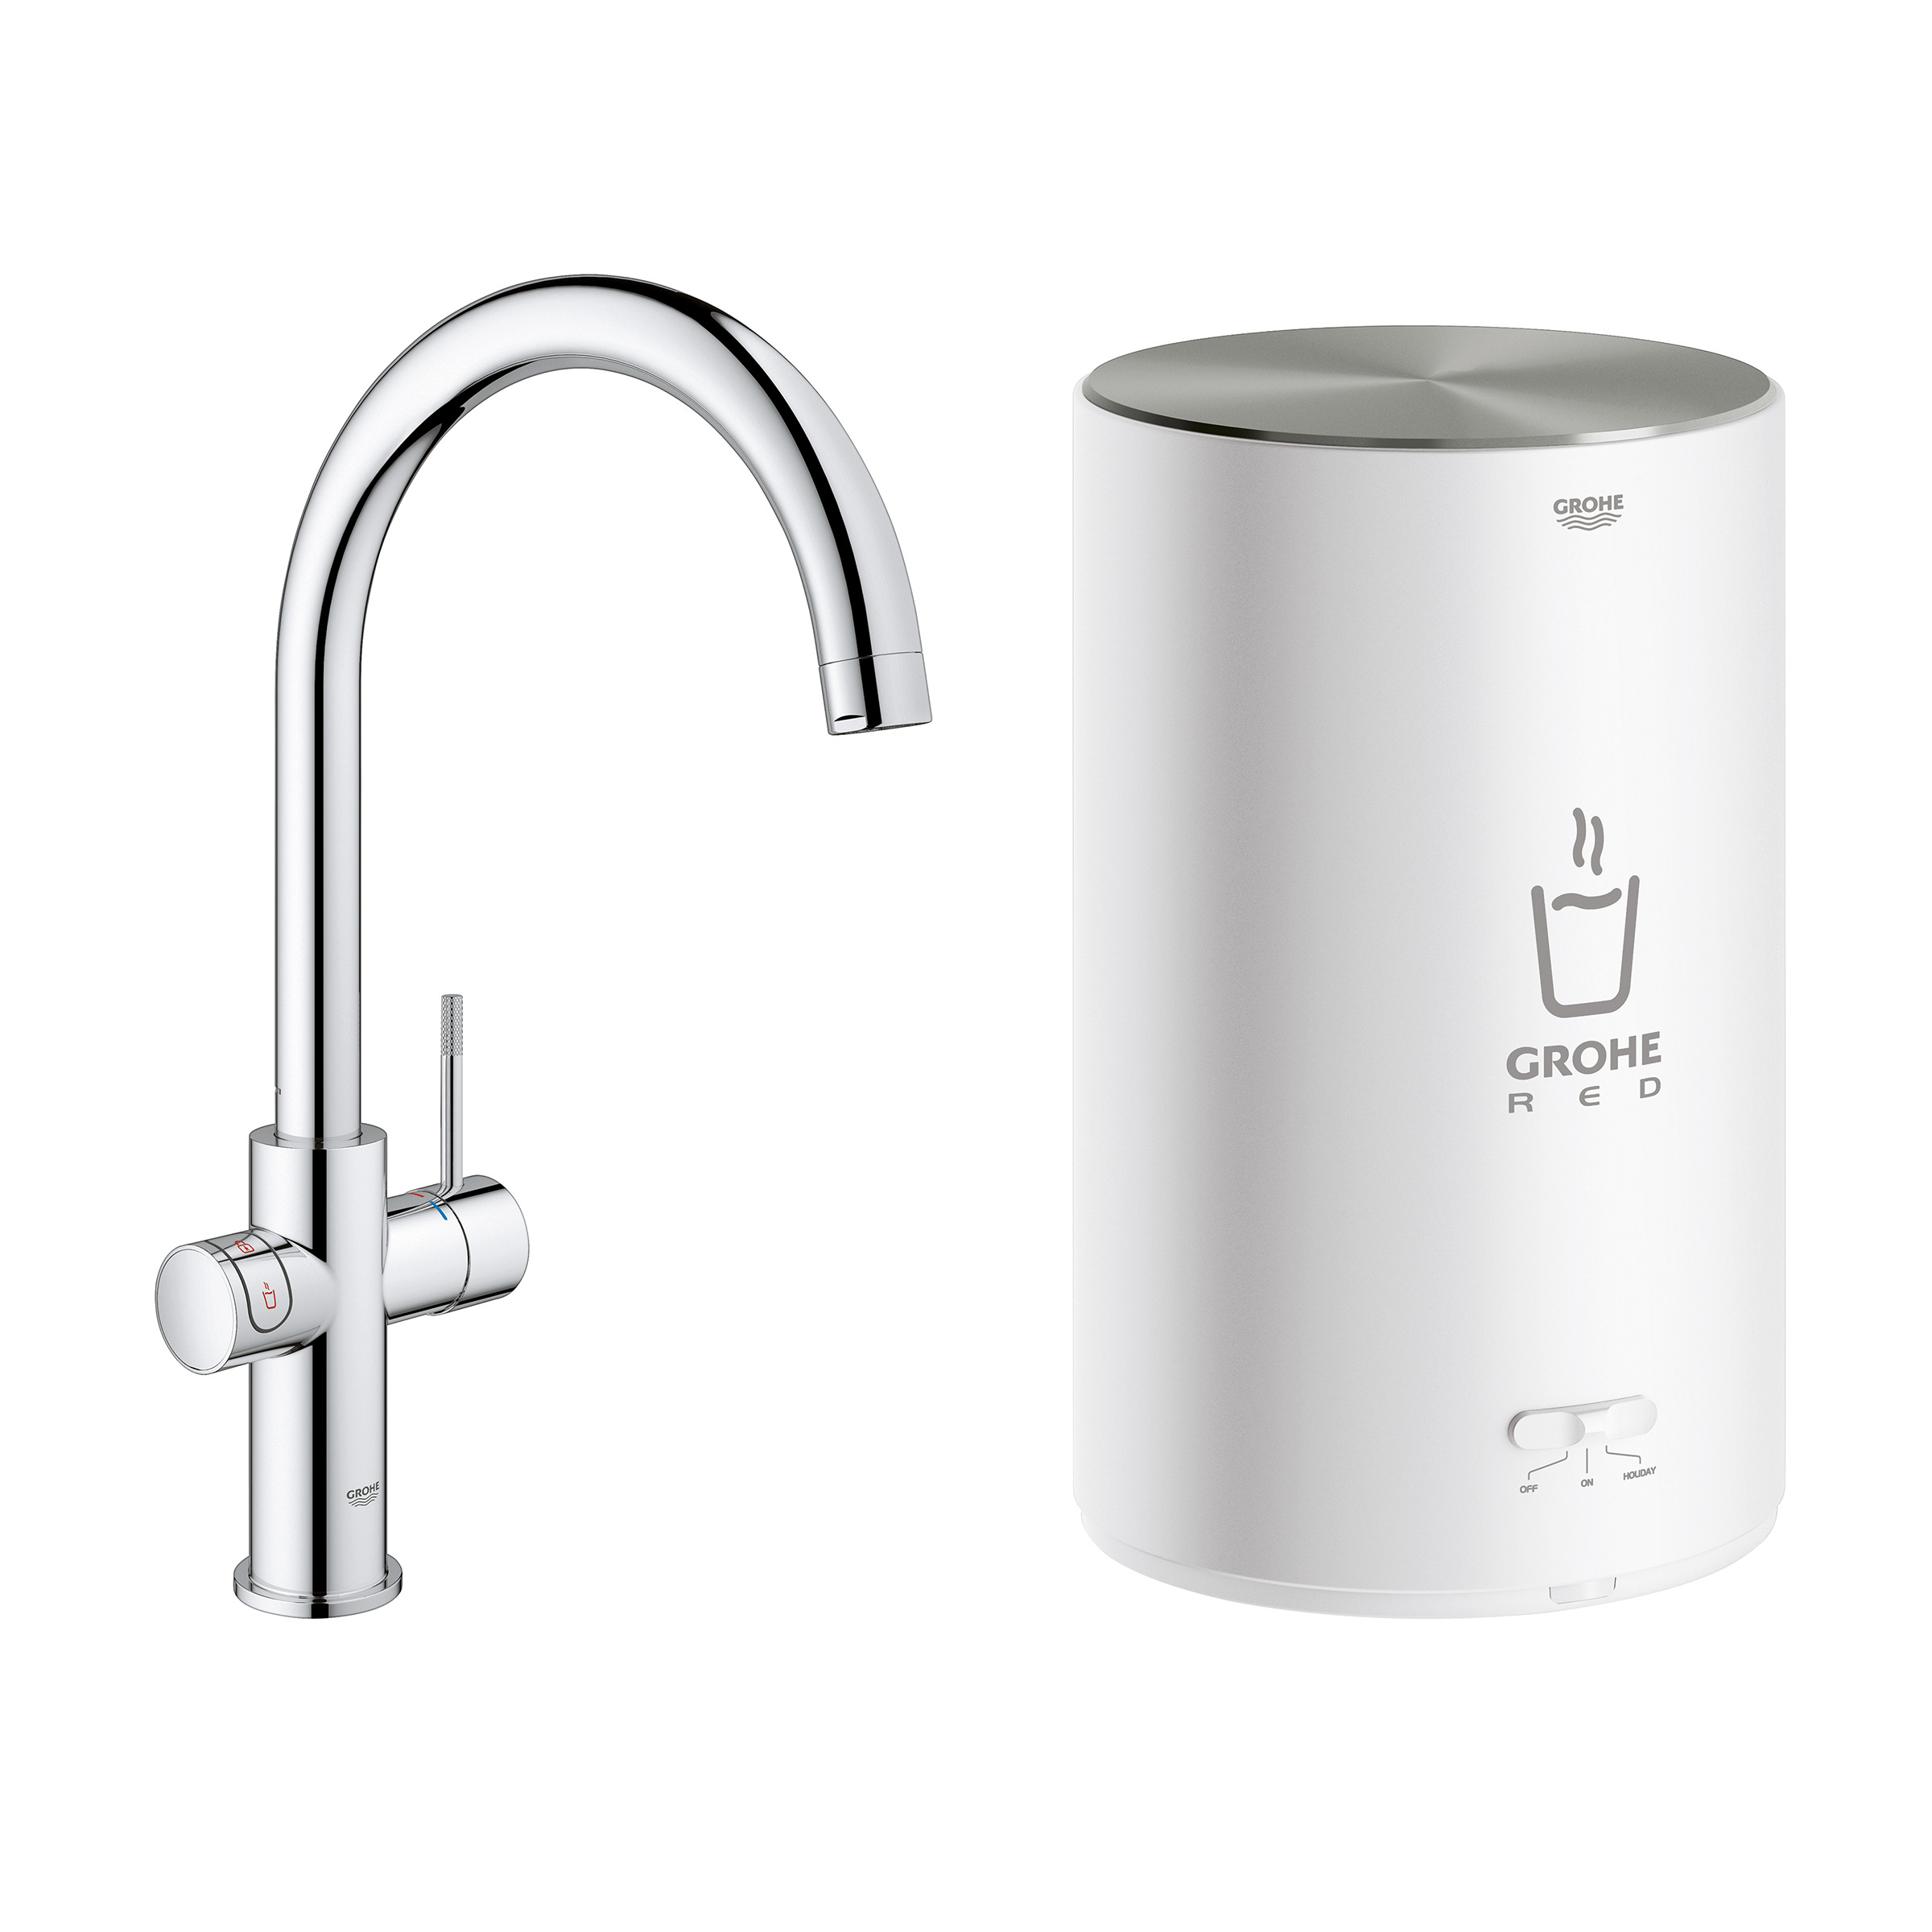 GROHE Red Duo Compact Kokendwaterkraan C-Uitloop Chroom